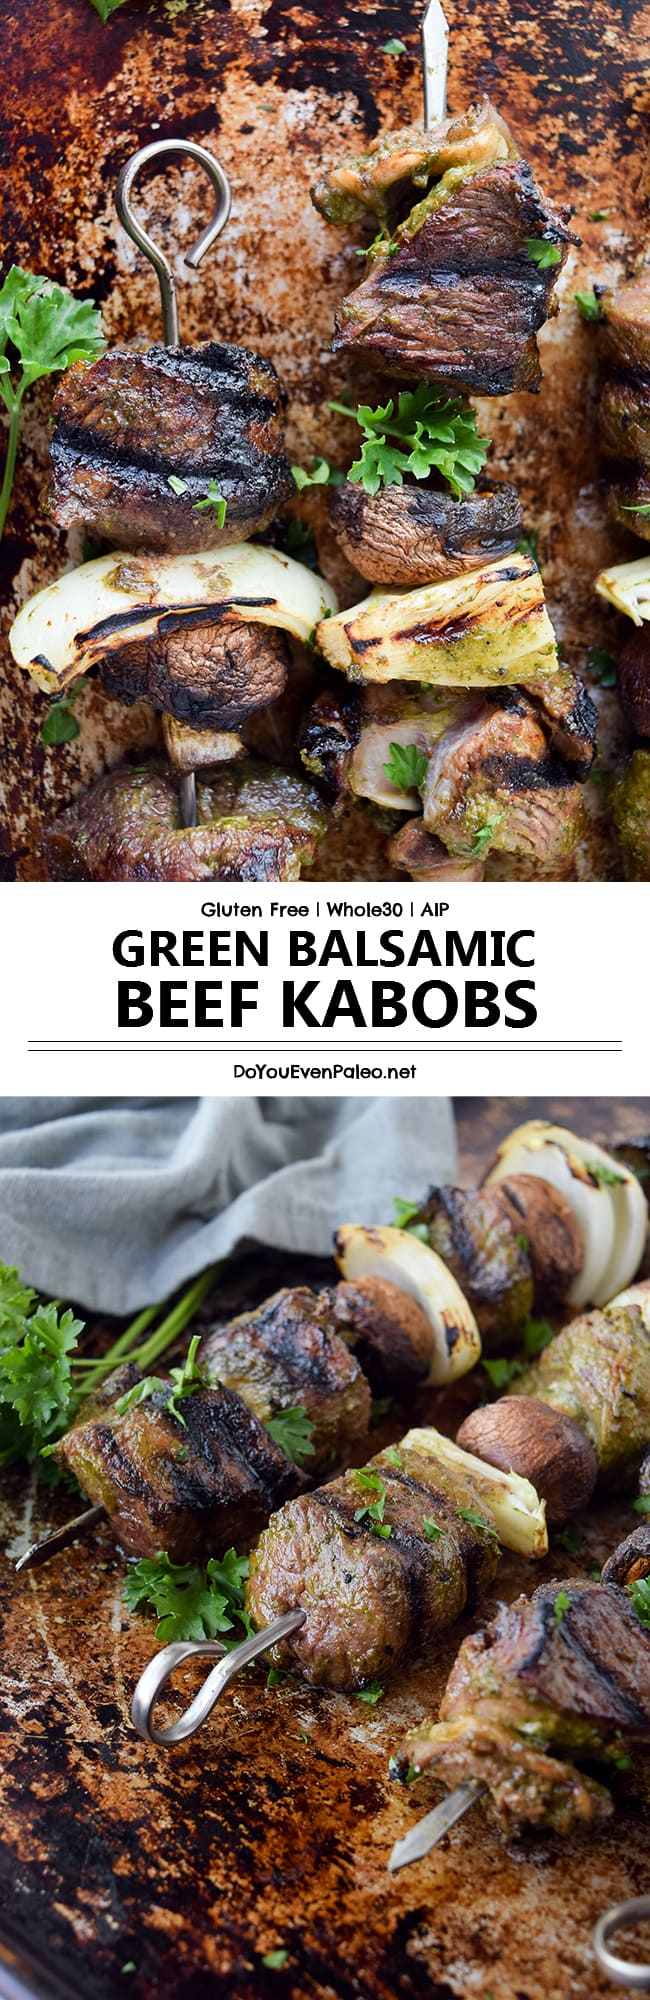 Green Balsamic Beef Kabobs - a simple marinade adds a twist of flavor to these easy kabobs! #glutenfree #paleo #aip | DoYouEvenPaleo.net